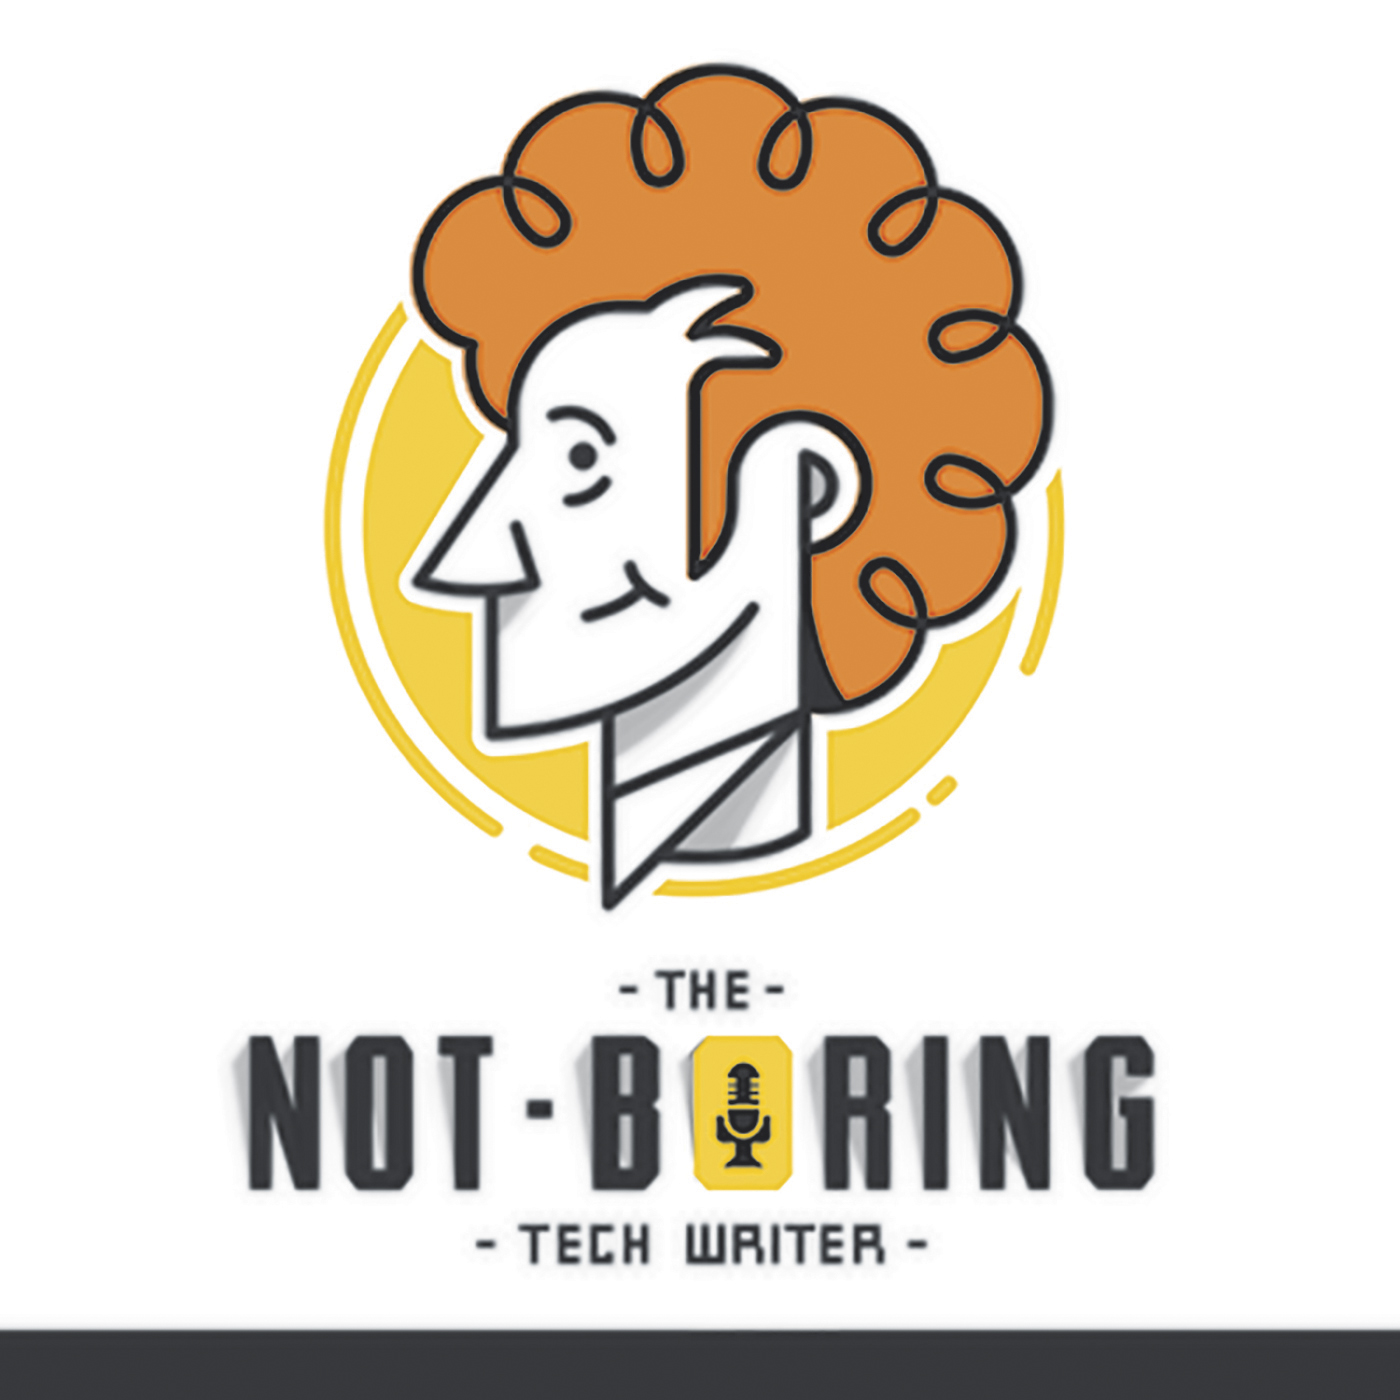 The Not Boring Tech Writer